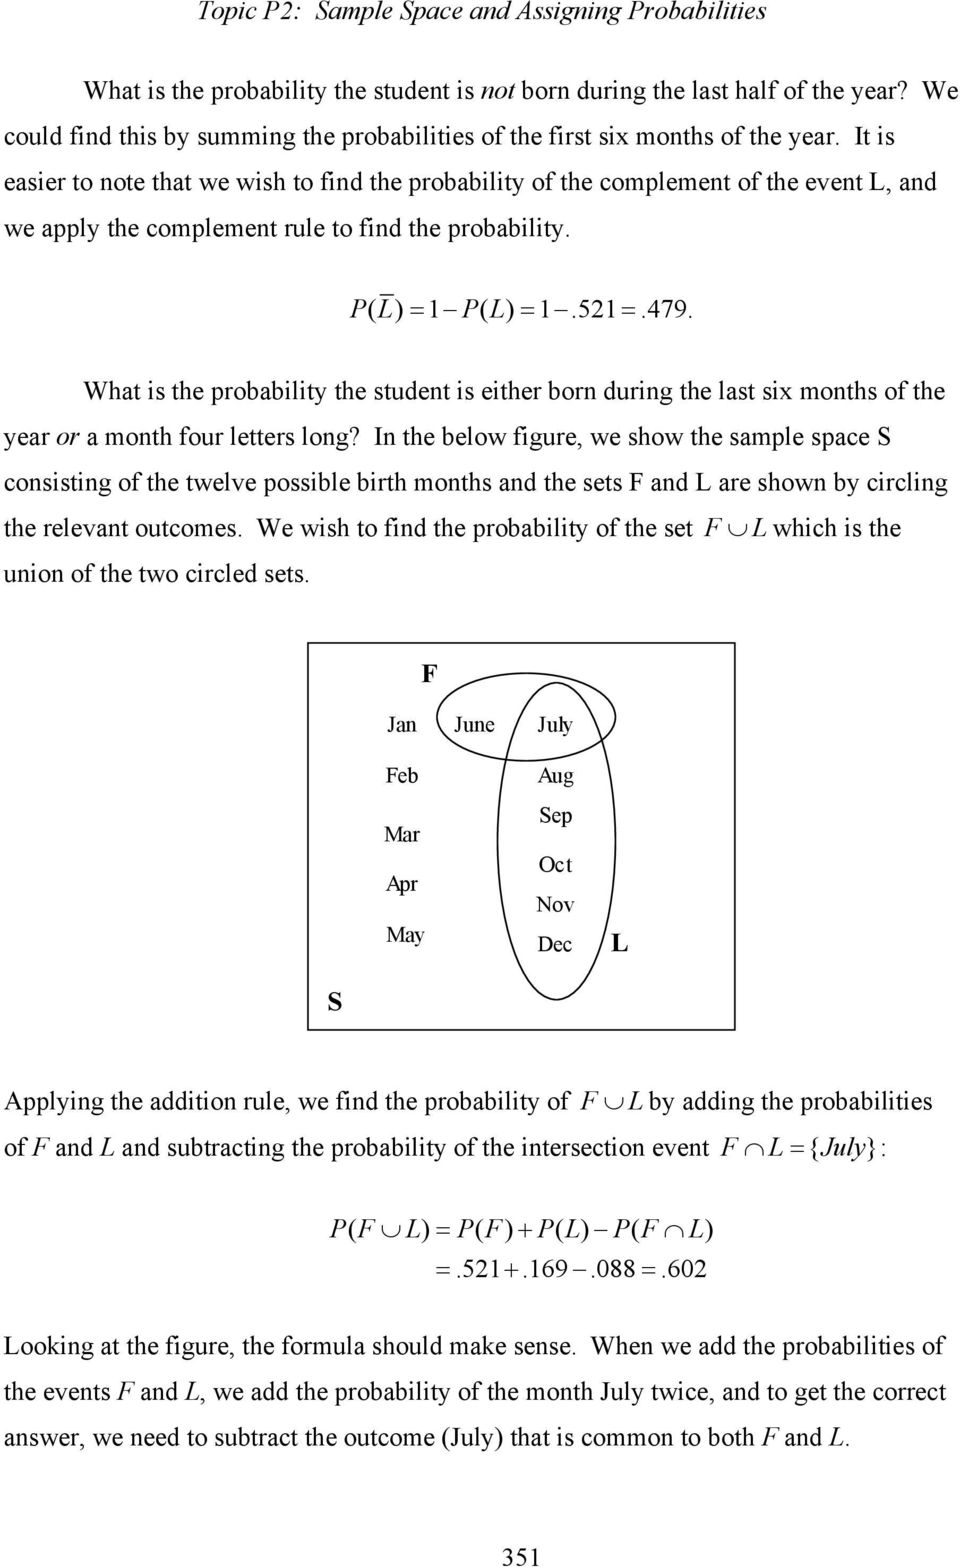 Topic P2 Sample Space And Assigning Probabilities Spotlight The Casino Game Of Roulette Topic P2 Sample Space And Assigning Probabilities Pdf Free Download